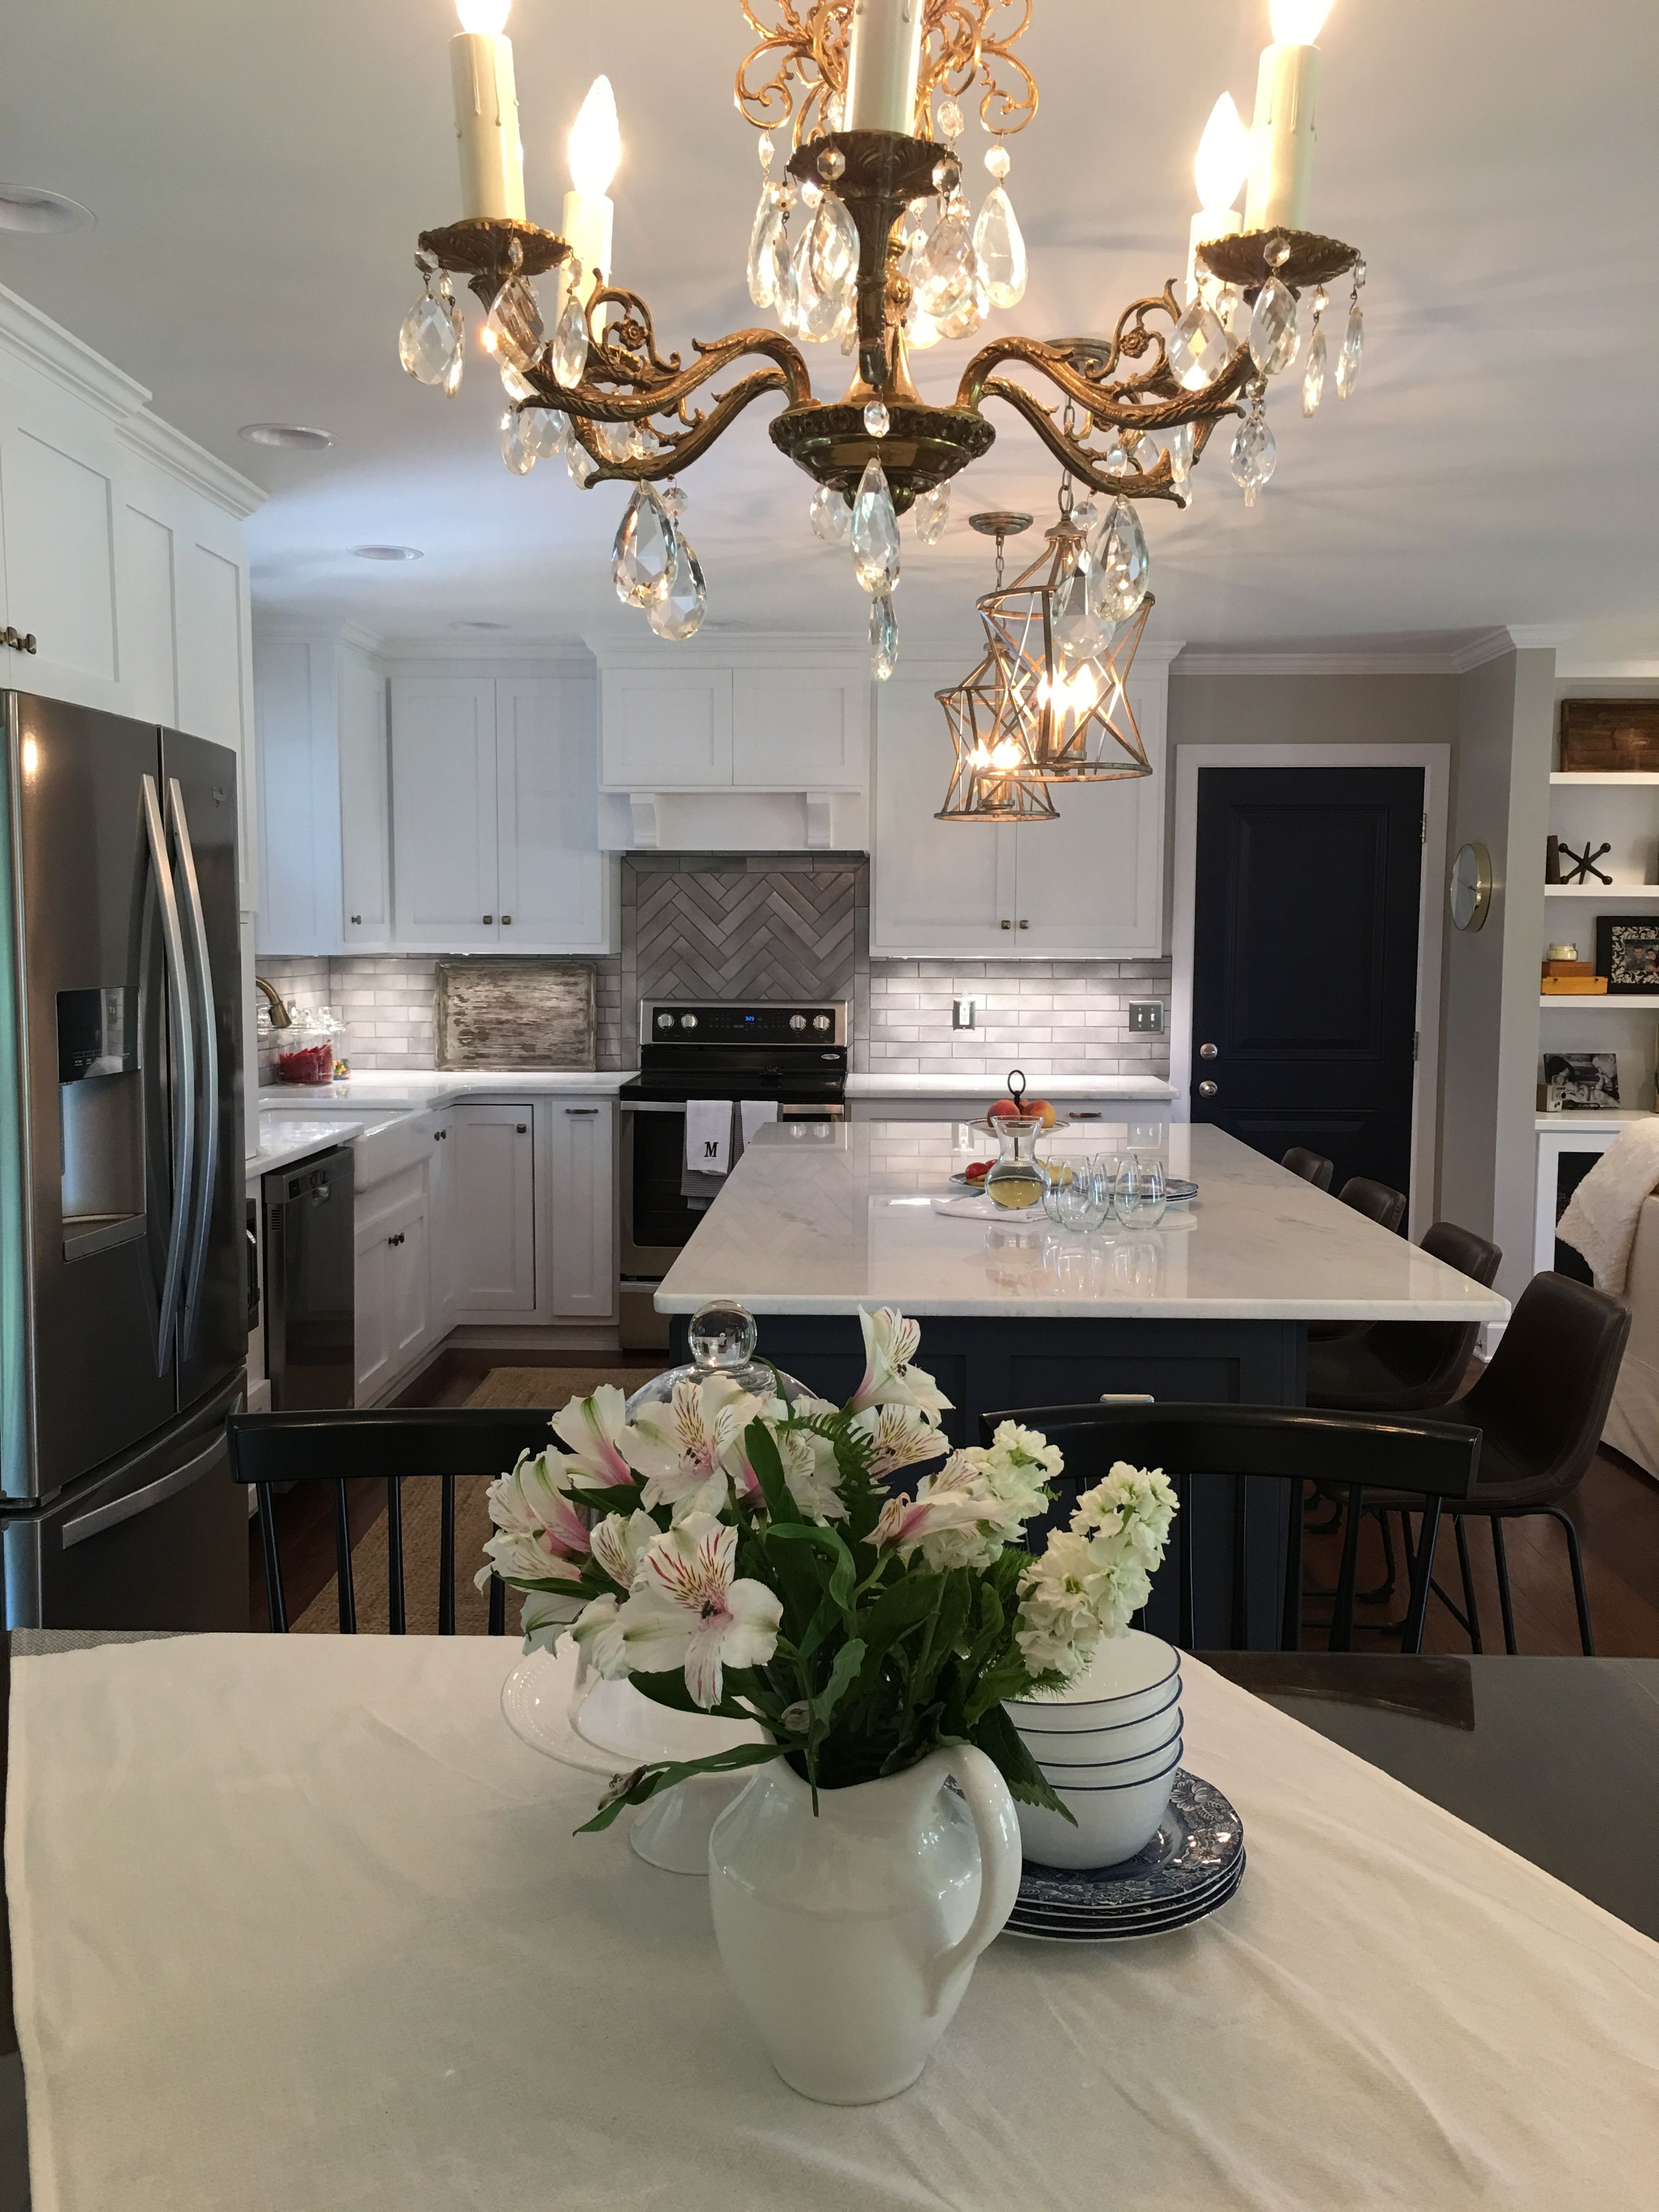 Antique gold chandelier | Dining room buffet, Kitchen ...